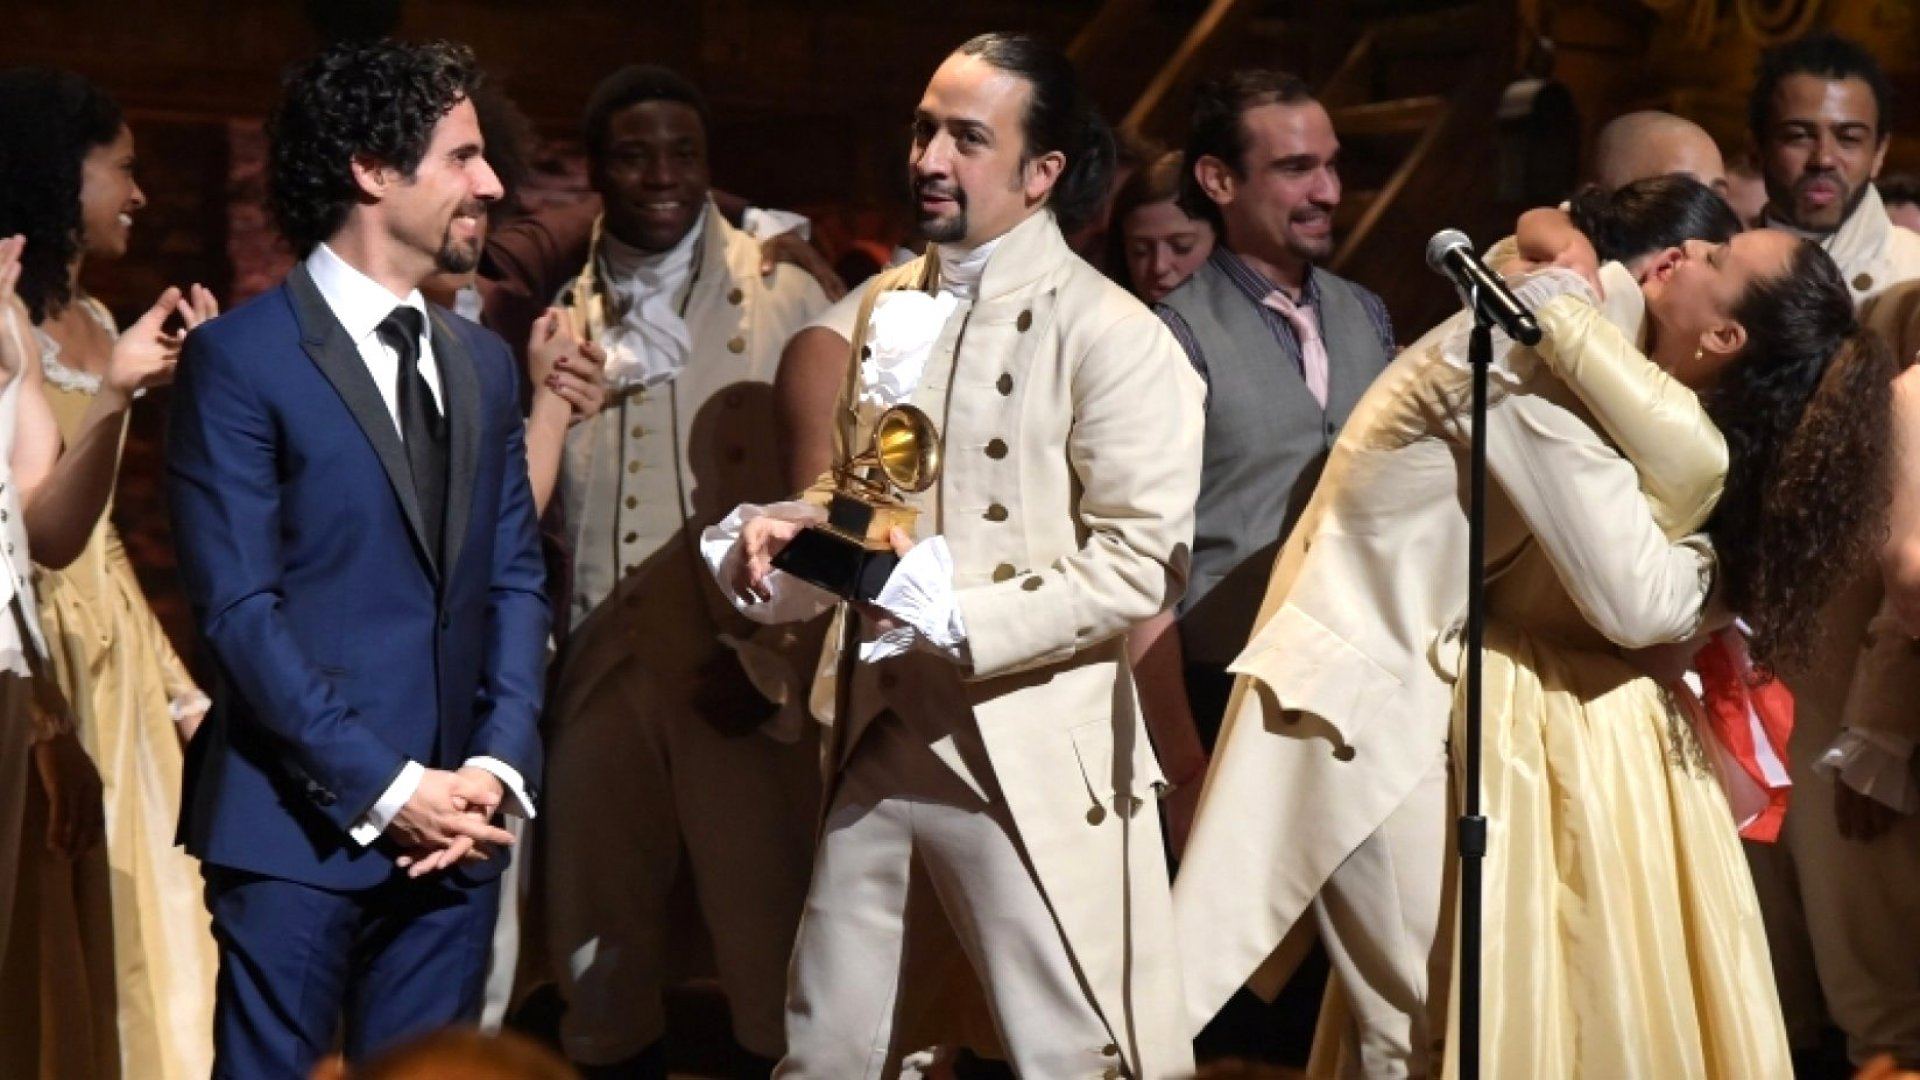 You Would Never Hire Alexander Hamilton, and That's a Problem